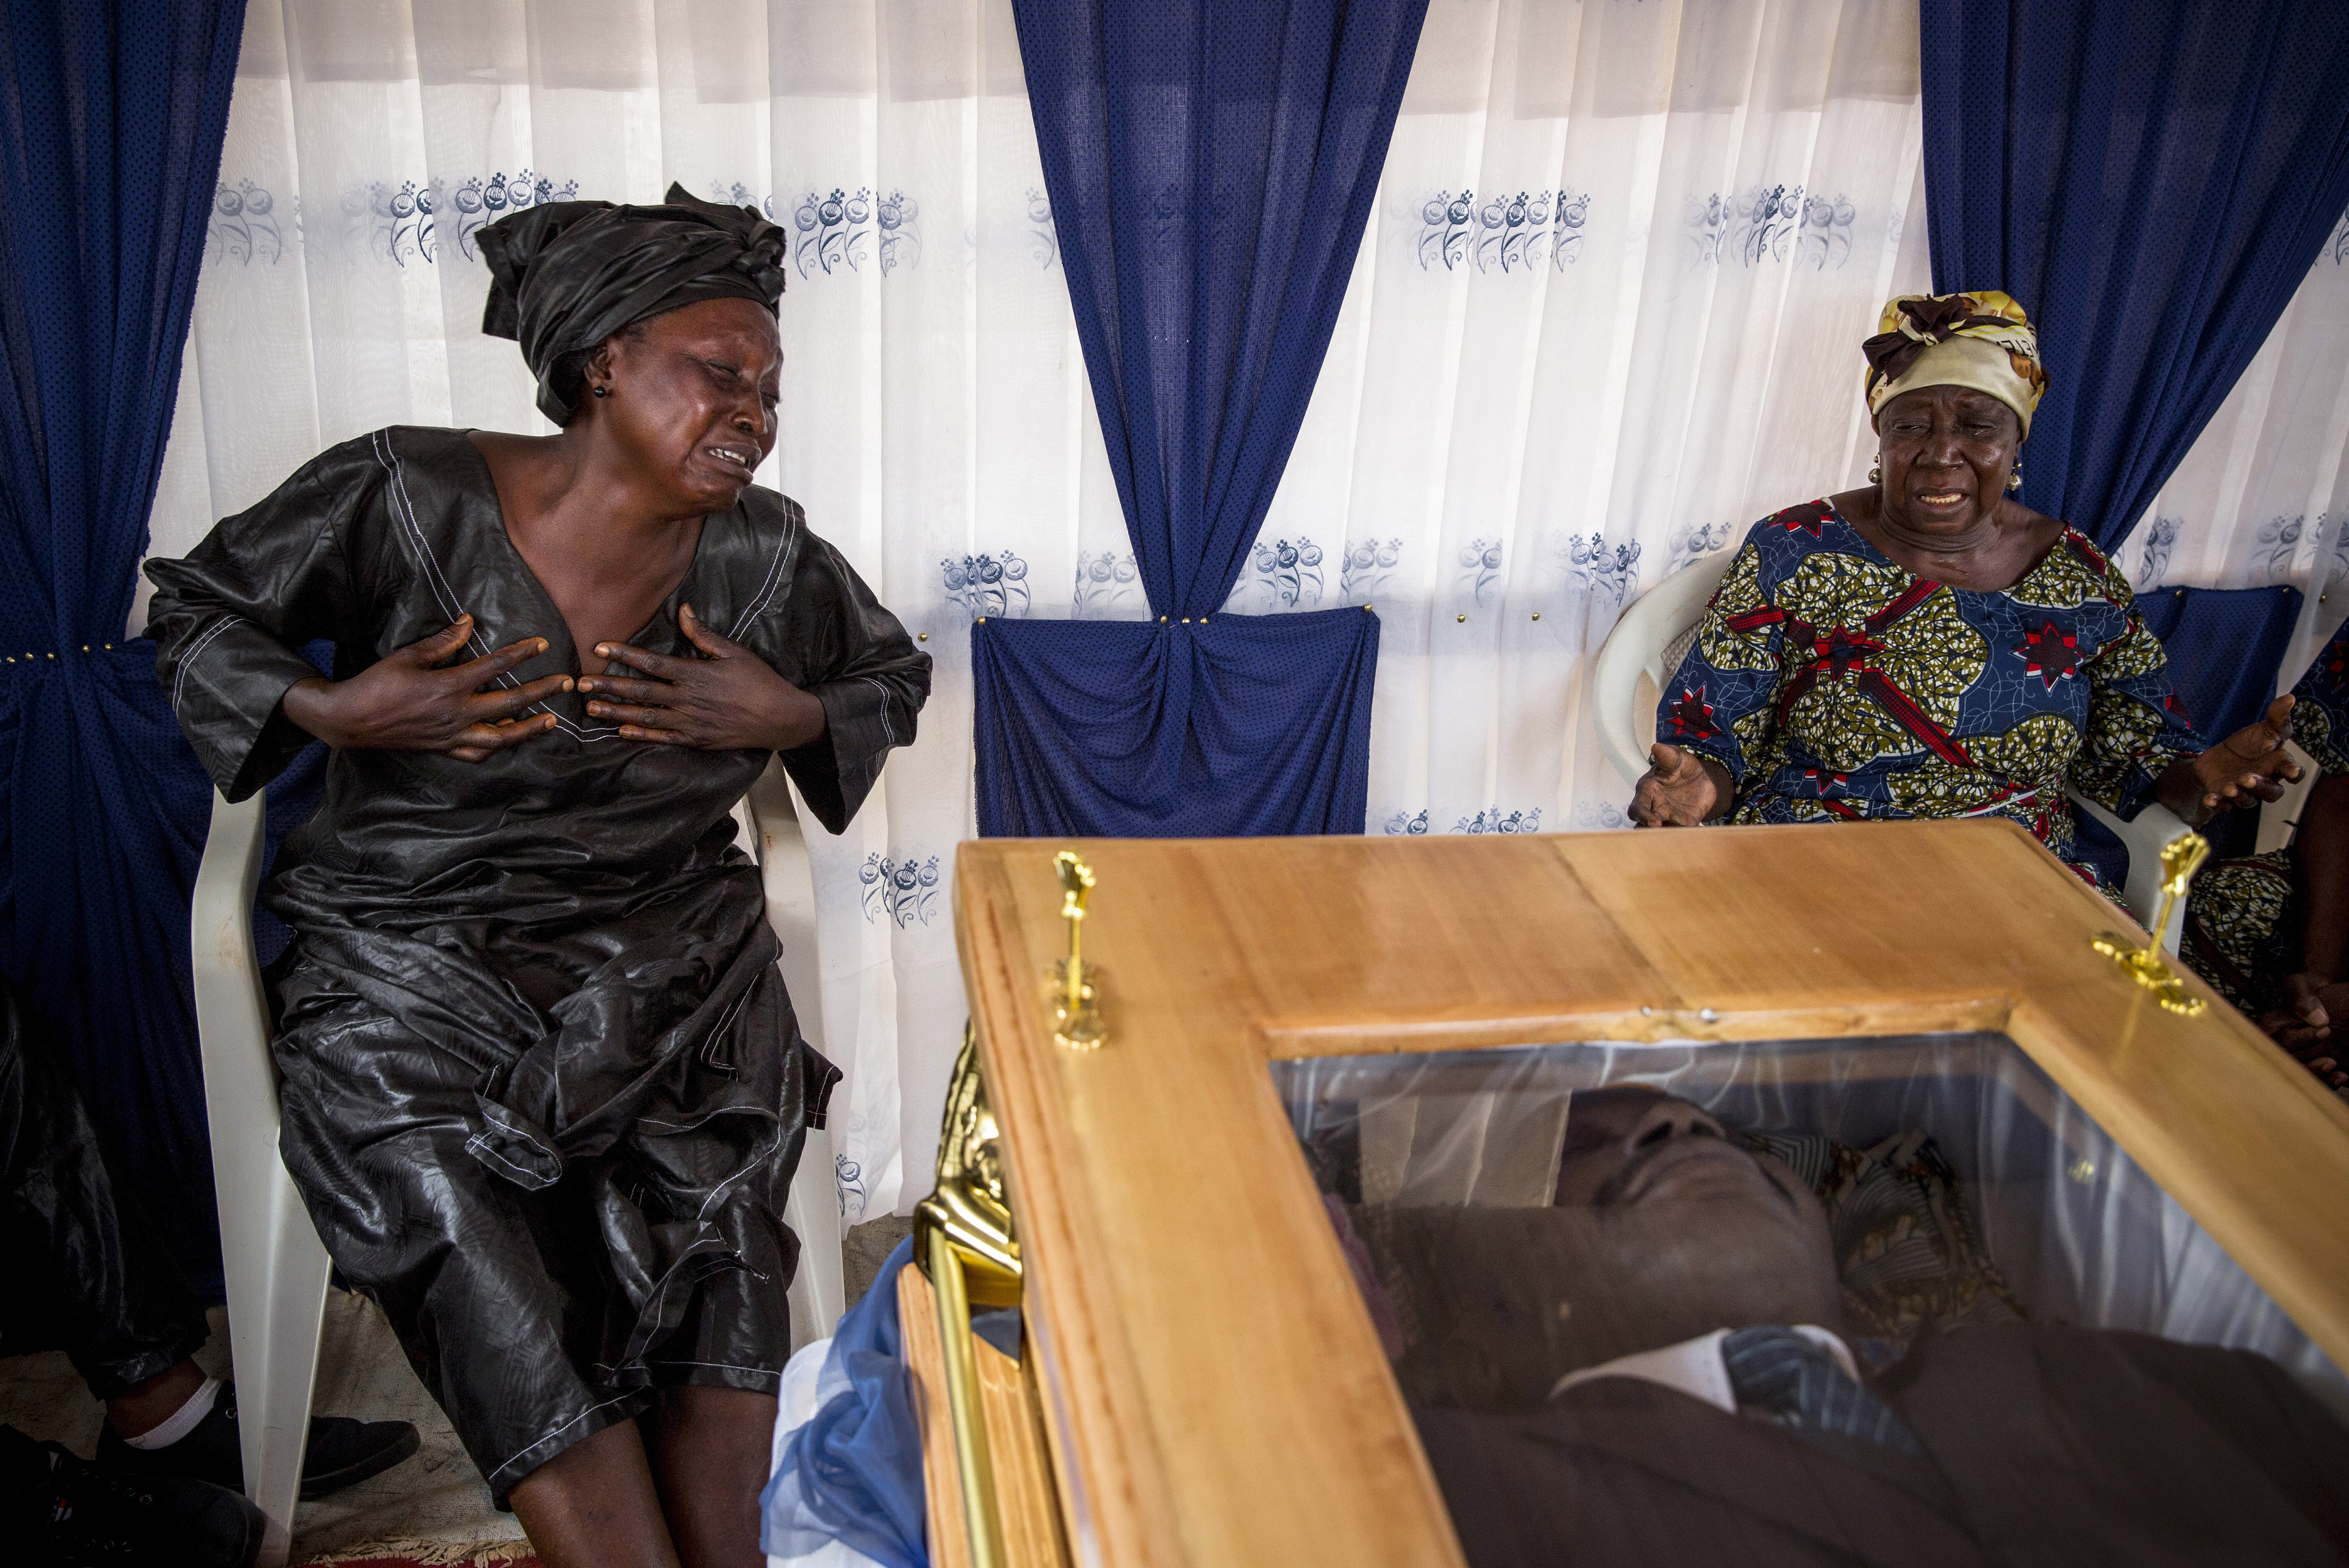 Nov. 29, 2013. Mourners at the magistrate's funeral.